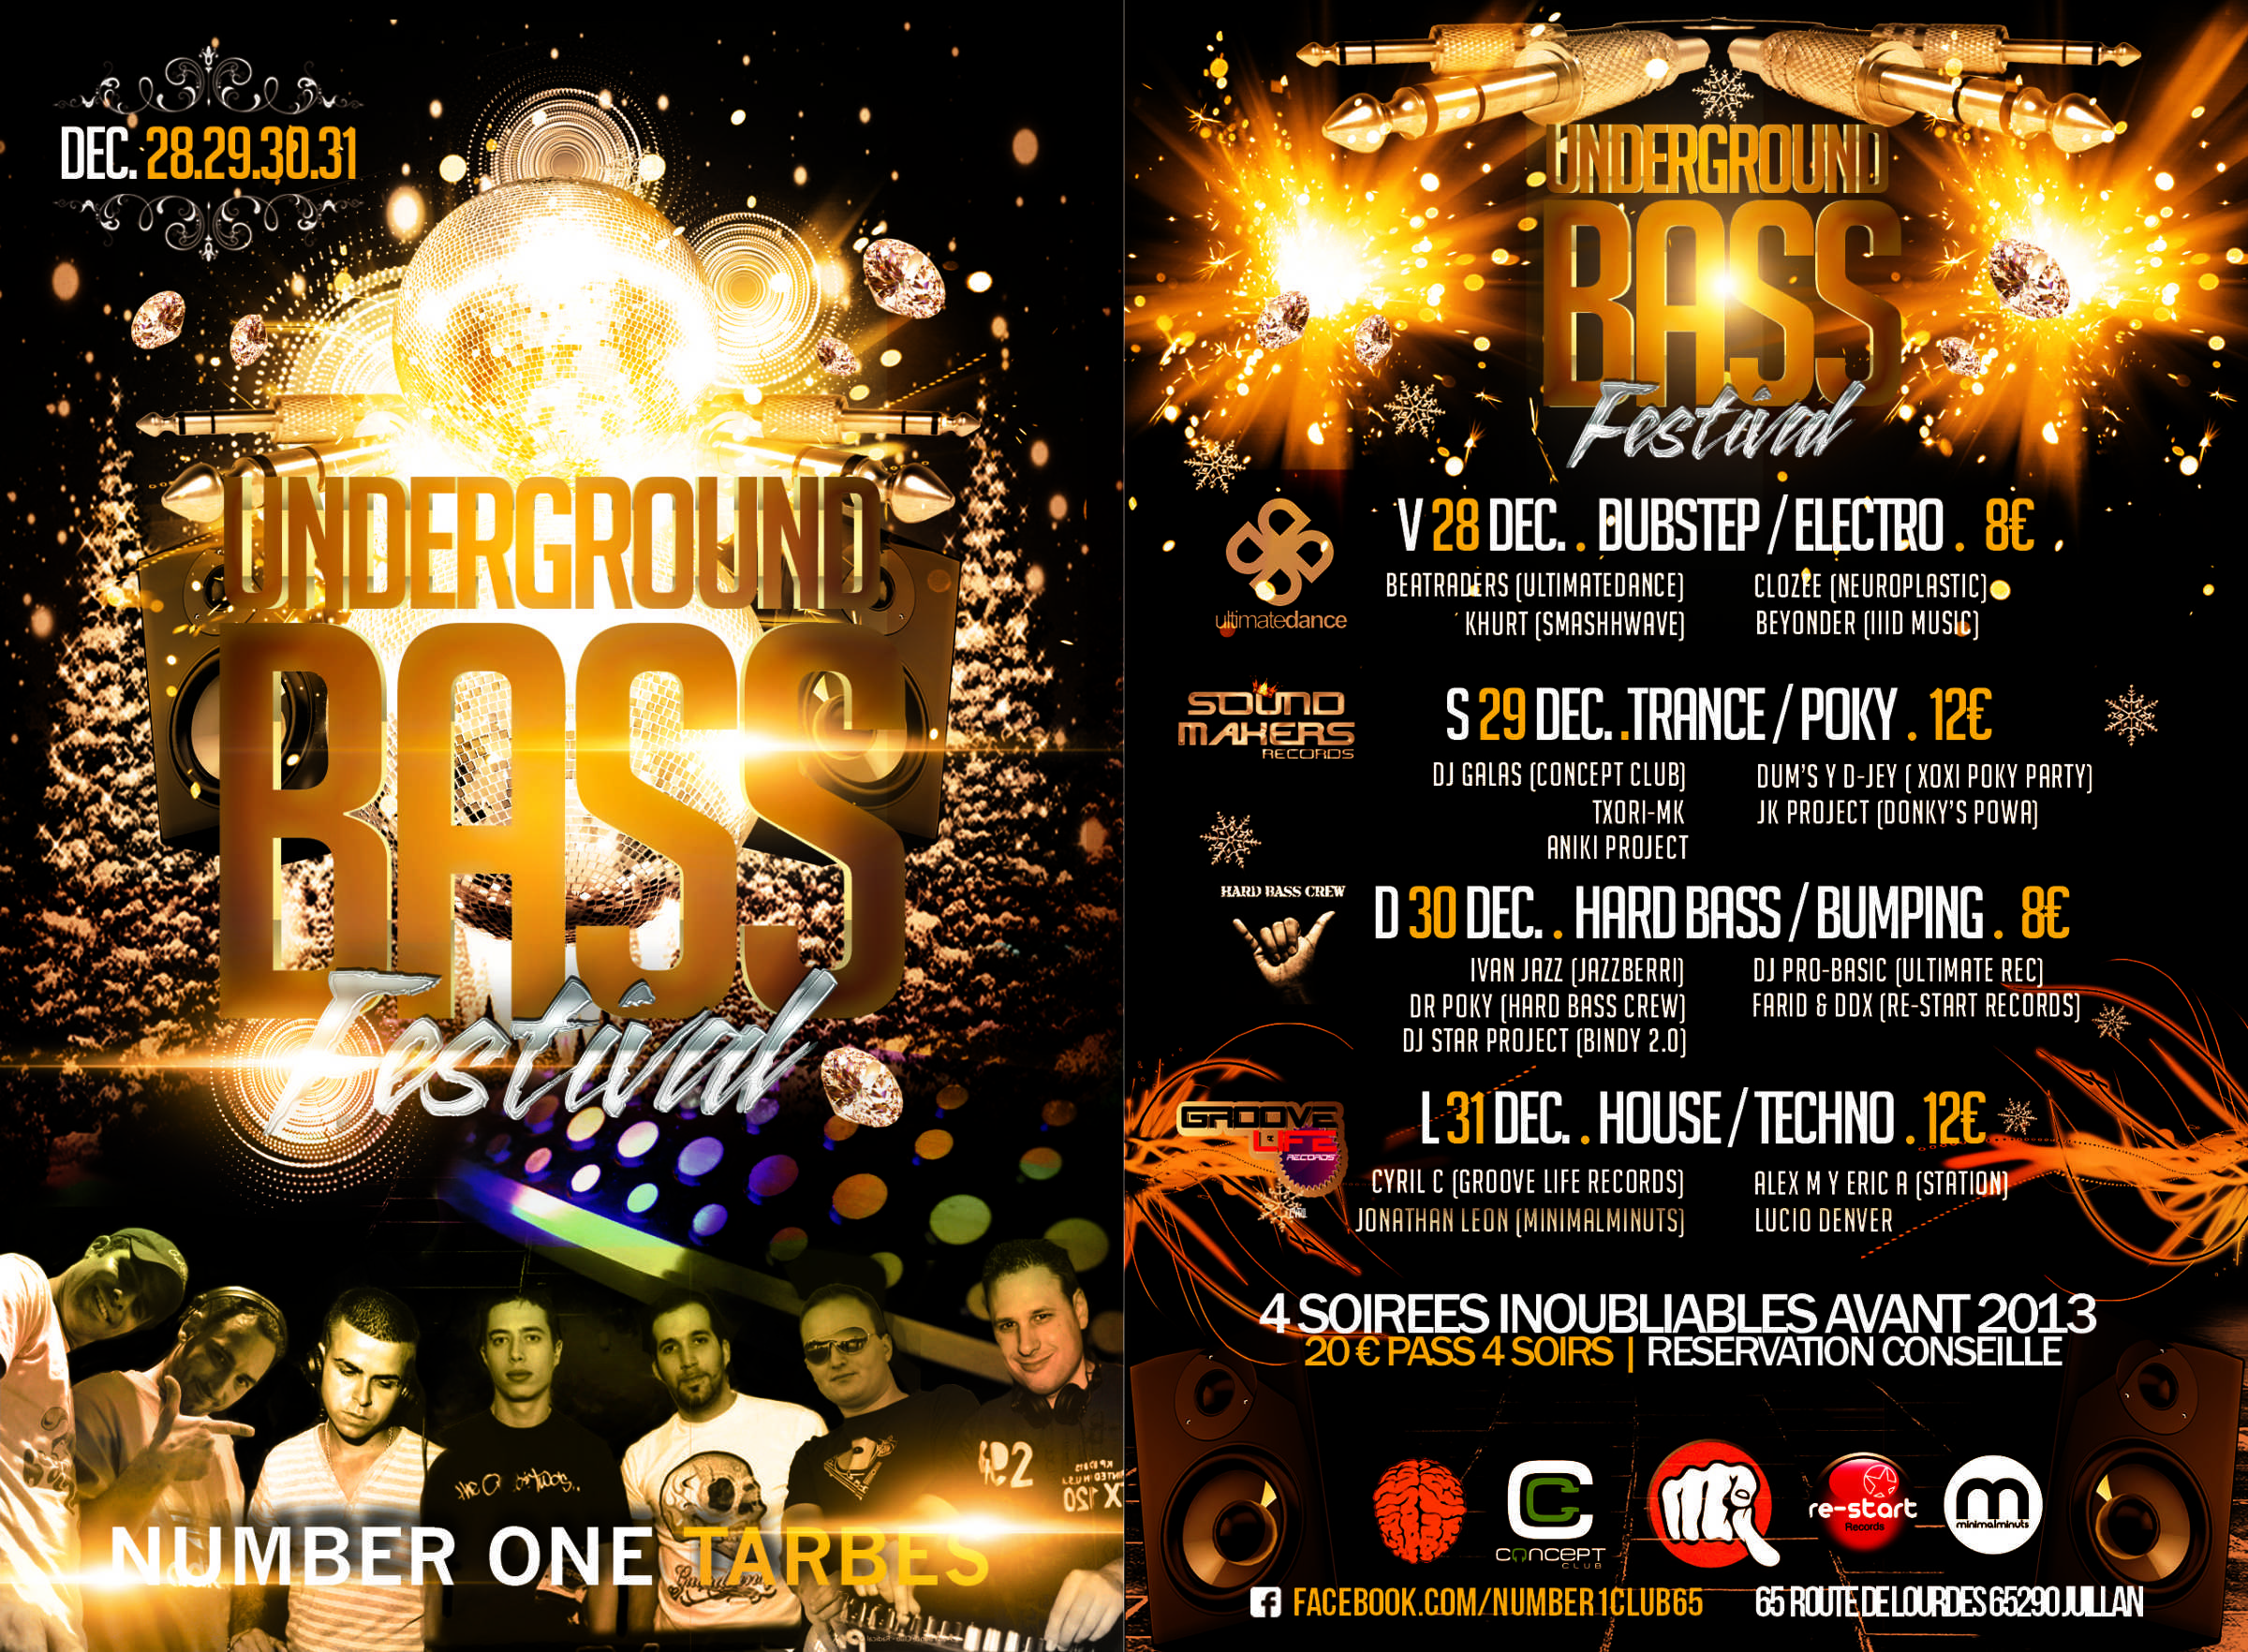 Sound Makers @ Underground Bass Festival (Number One/65)